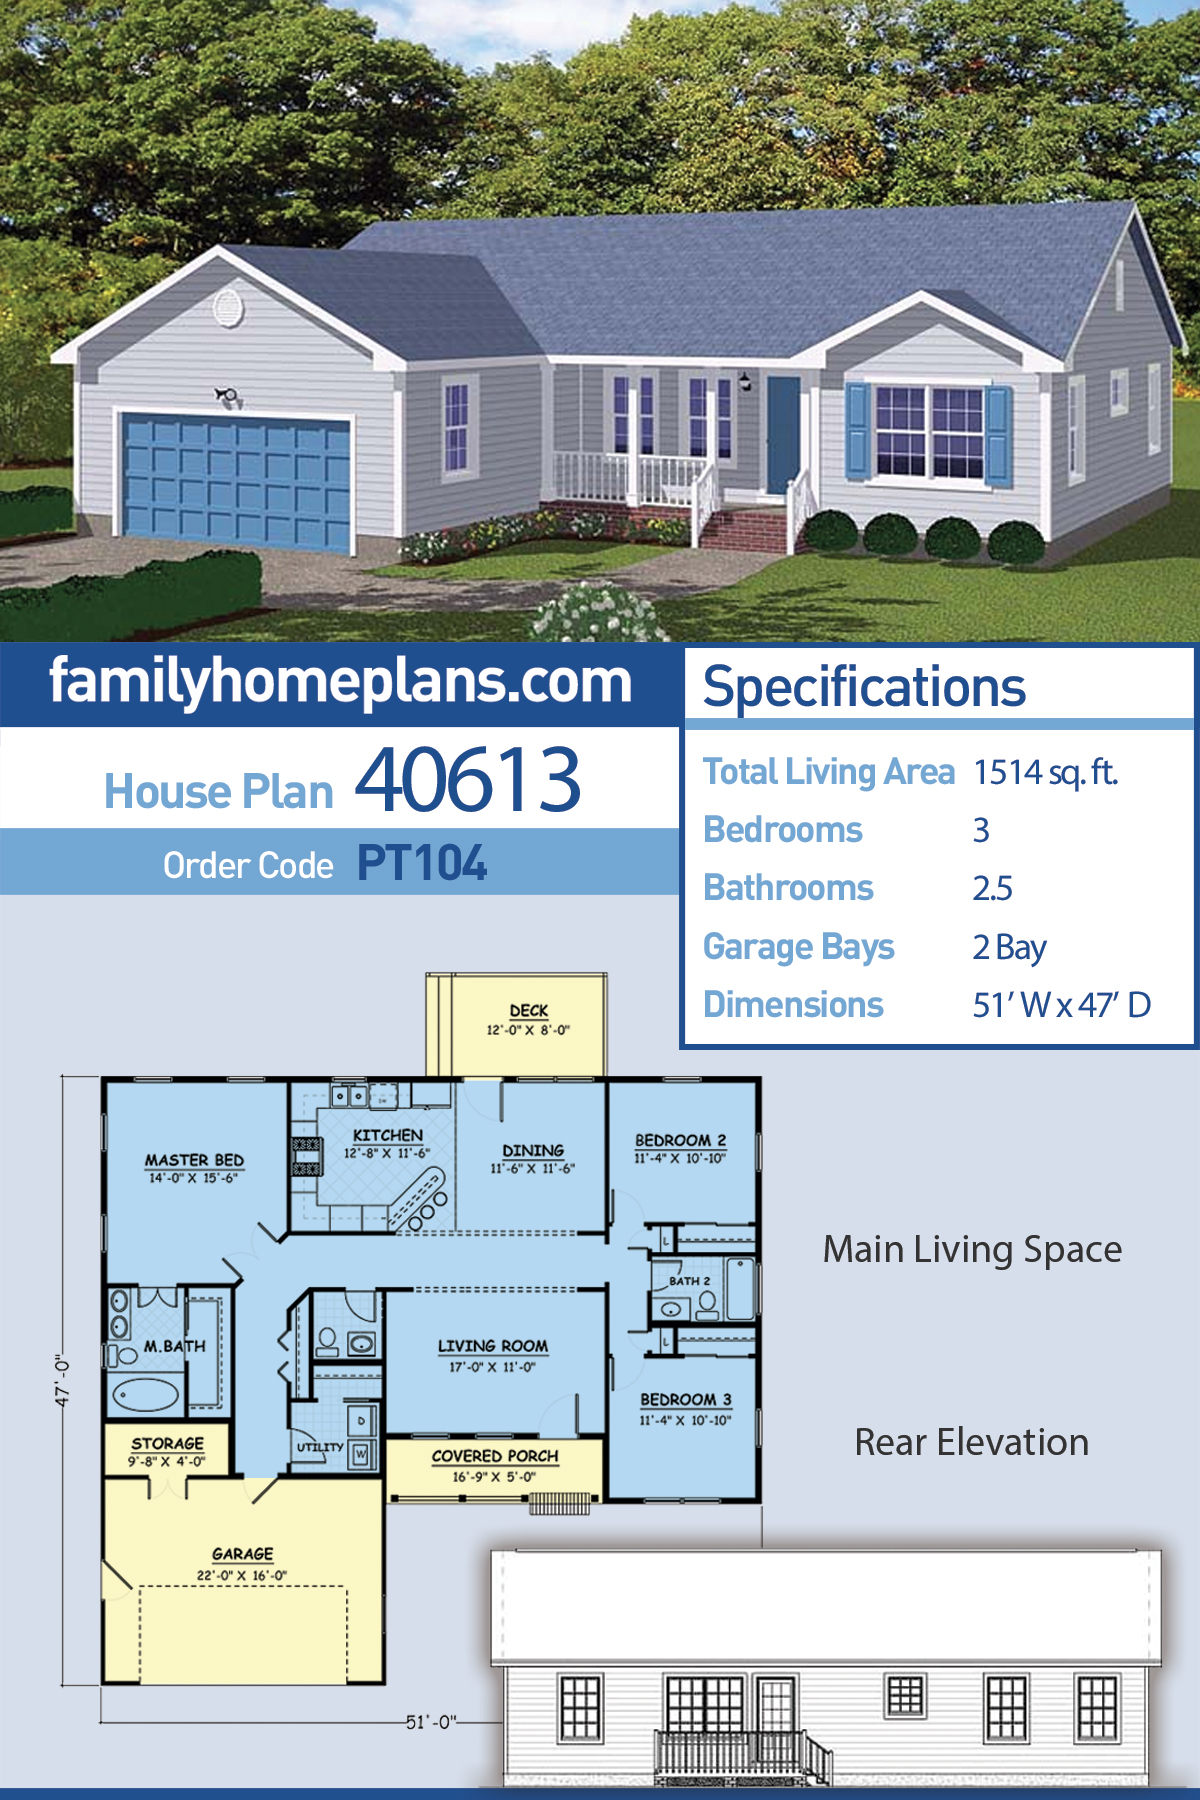 Ranch, Traditional House Plan 40613 with 3 Beds, 3 Baths, 2 Car Garage